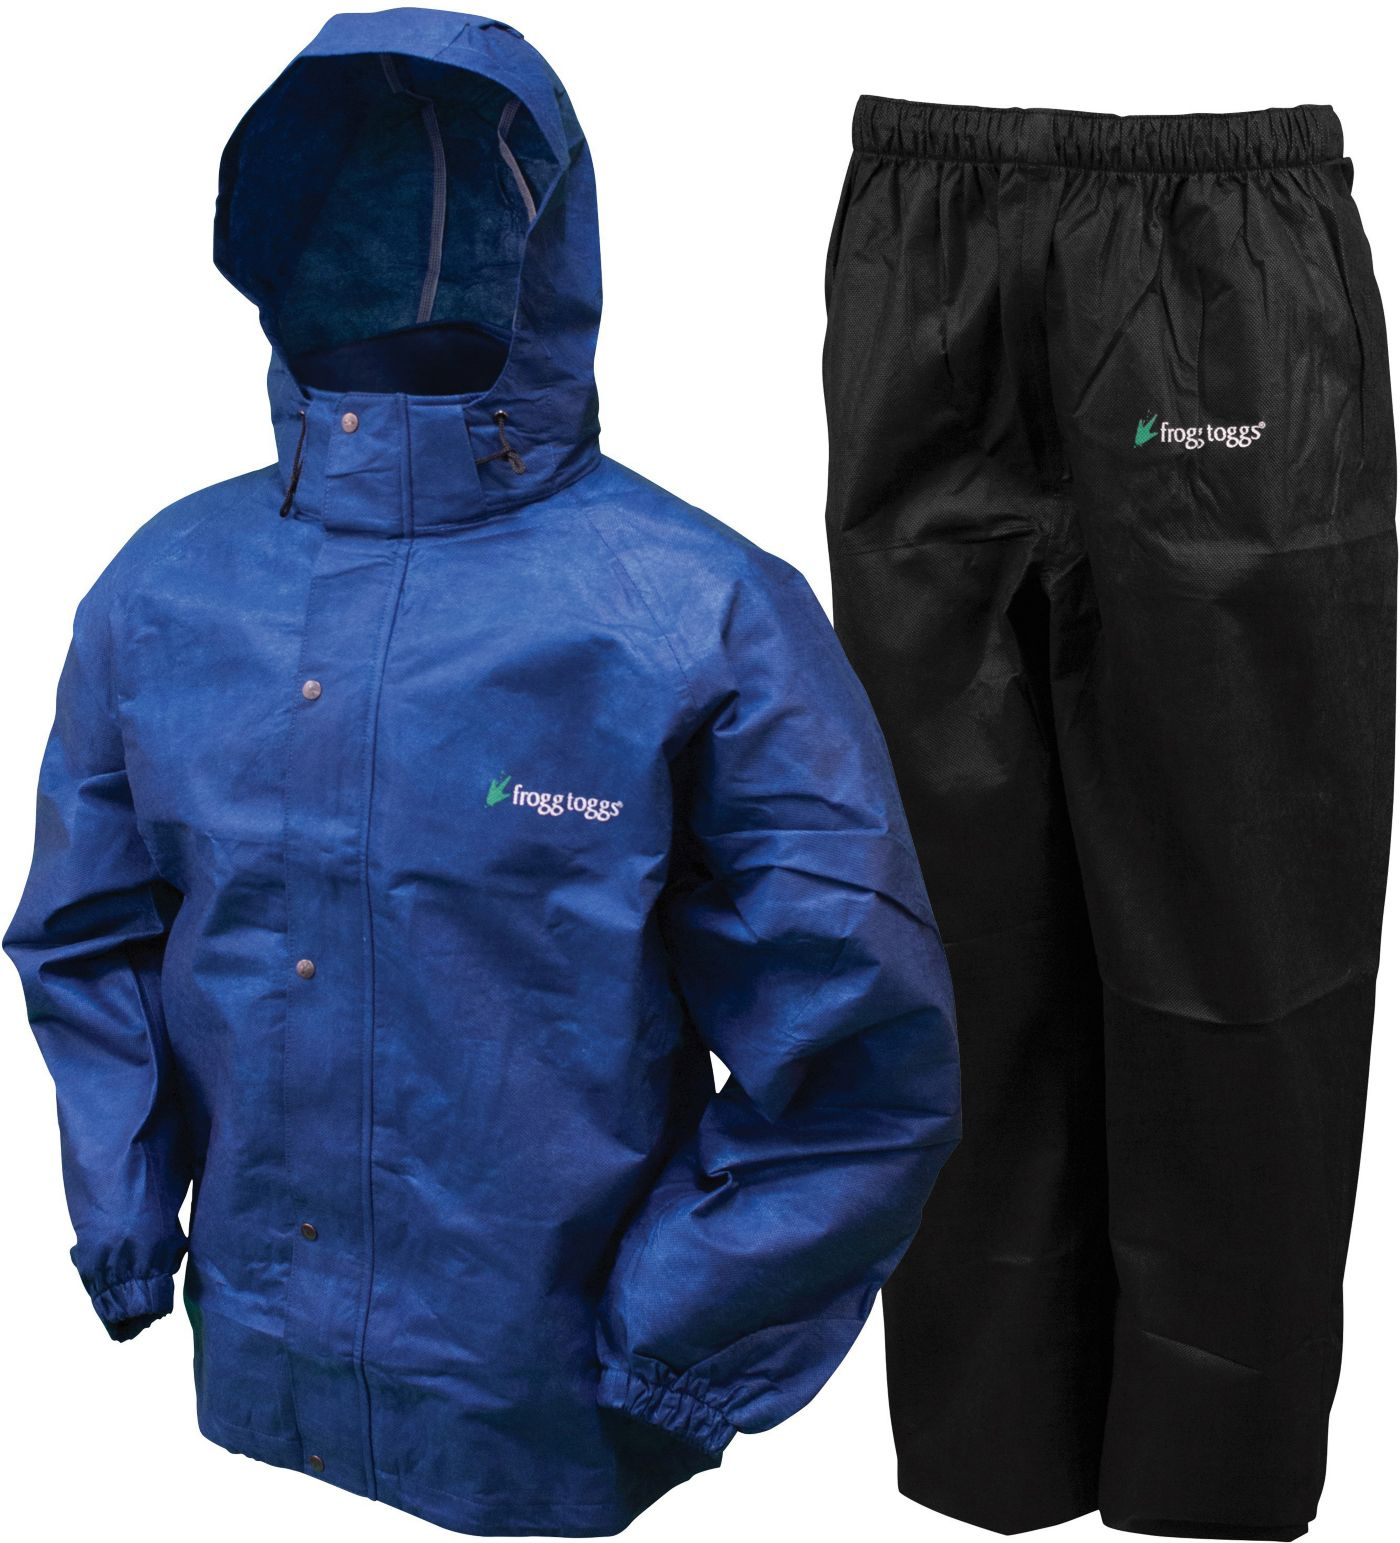 frogg toggs All Sport Rain and Wind Suit